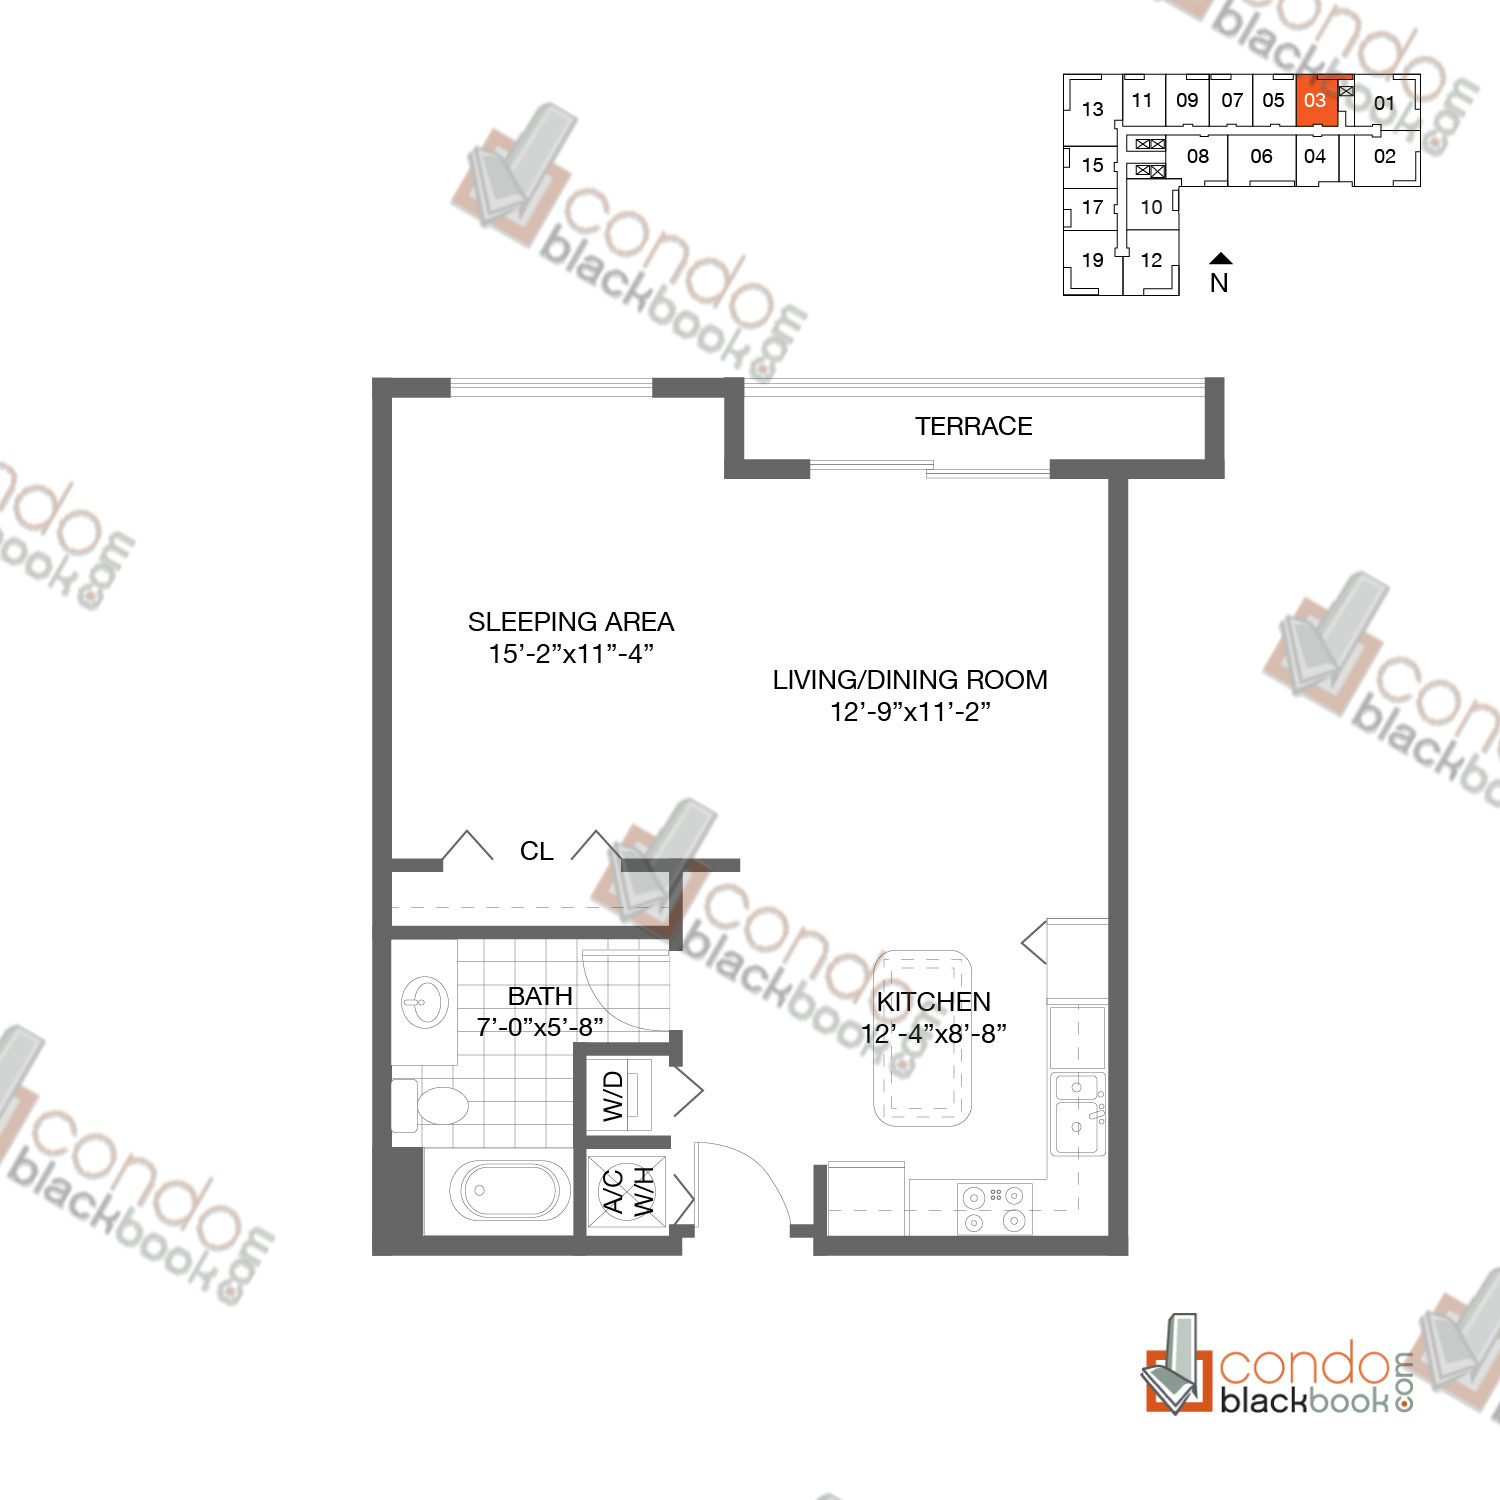 Floor plan for Loft Downtown II Downtown Miami Miami, model A2, line 03, 1/1 bedrooms, 646 sq ft